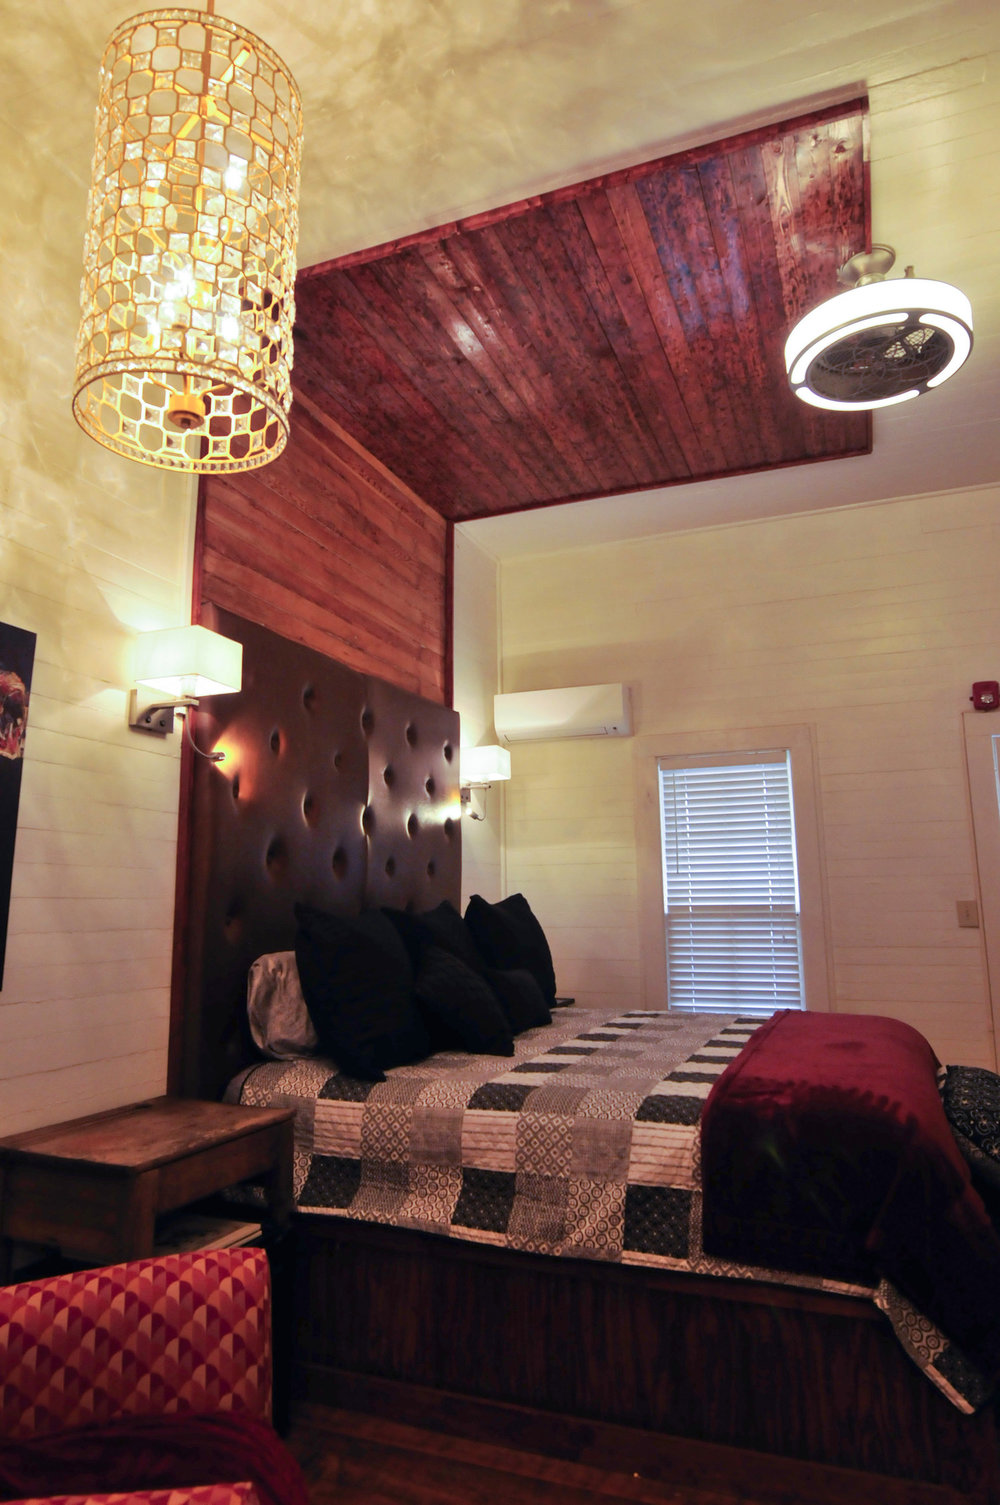 Southern Comfort Room (click image for rates)